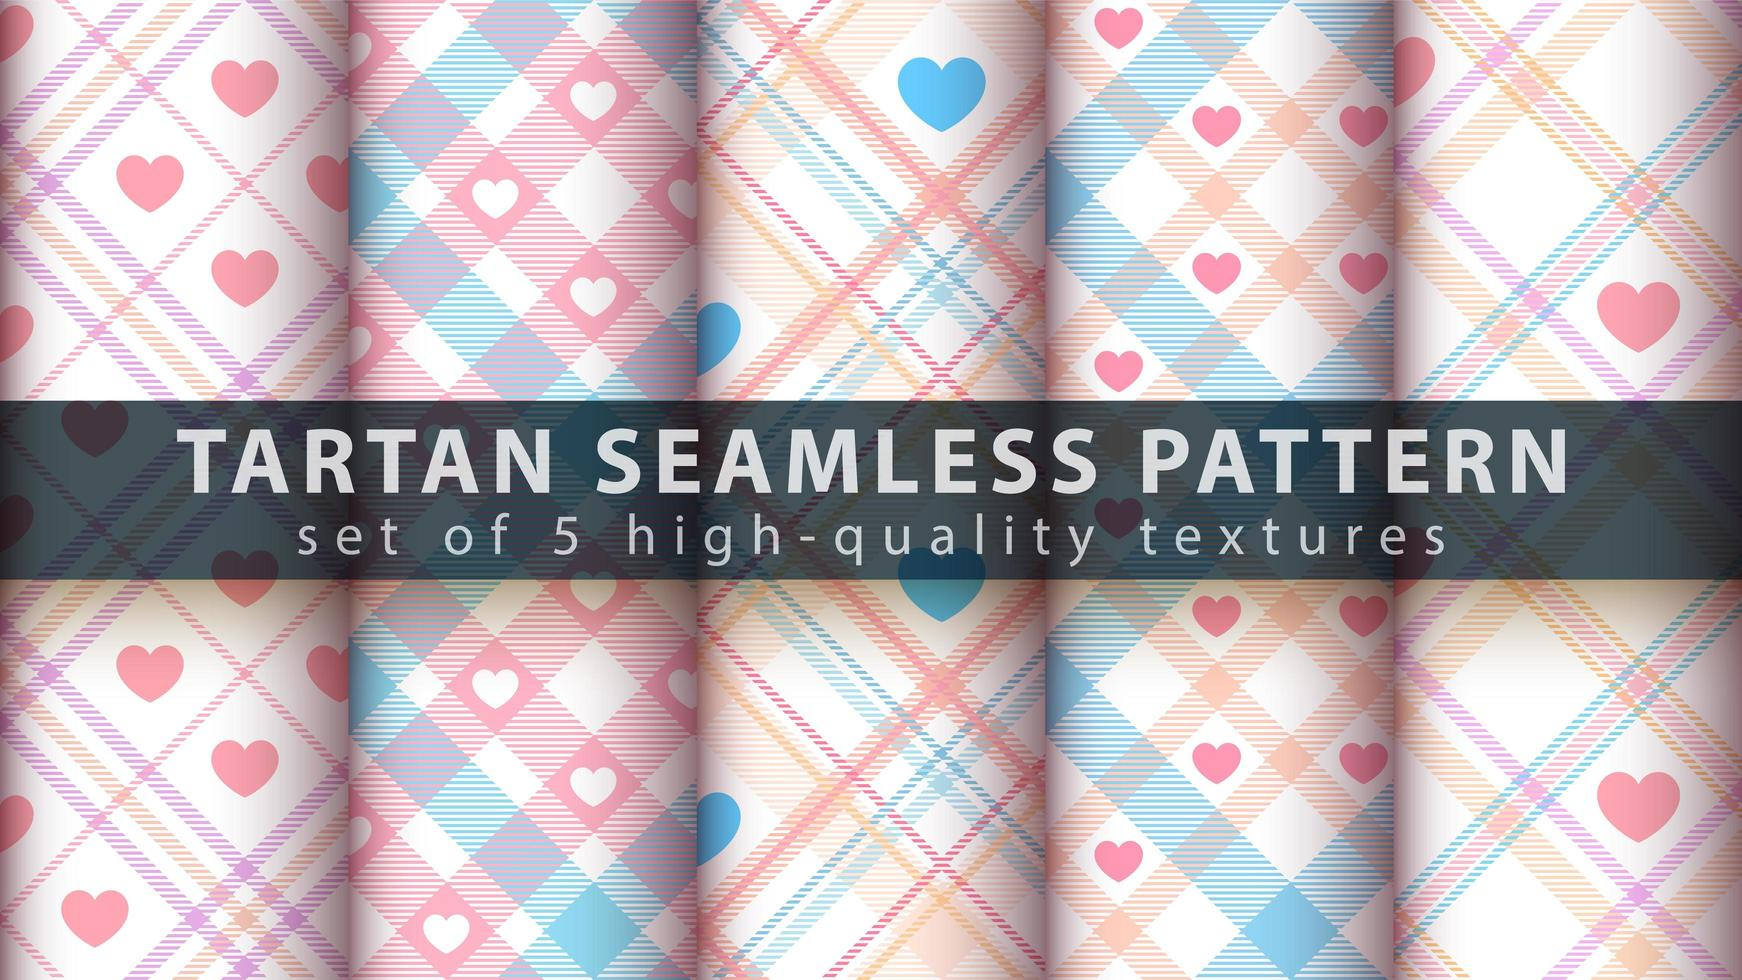 Set of tartan seamless pattern background set with heart shapes vector